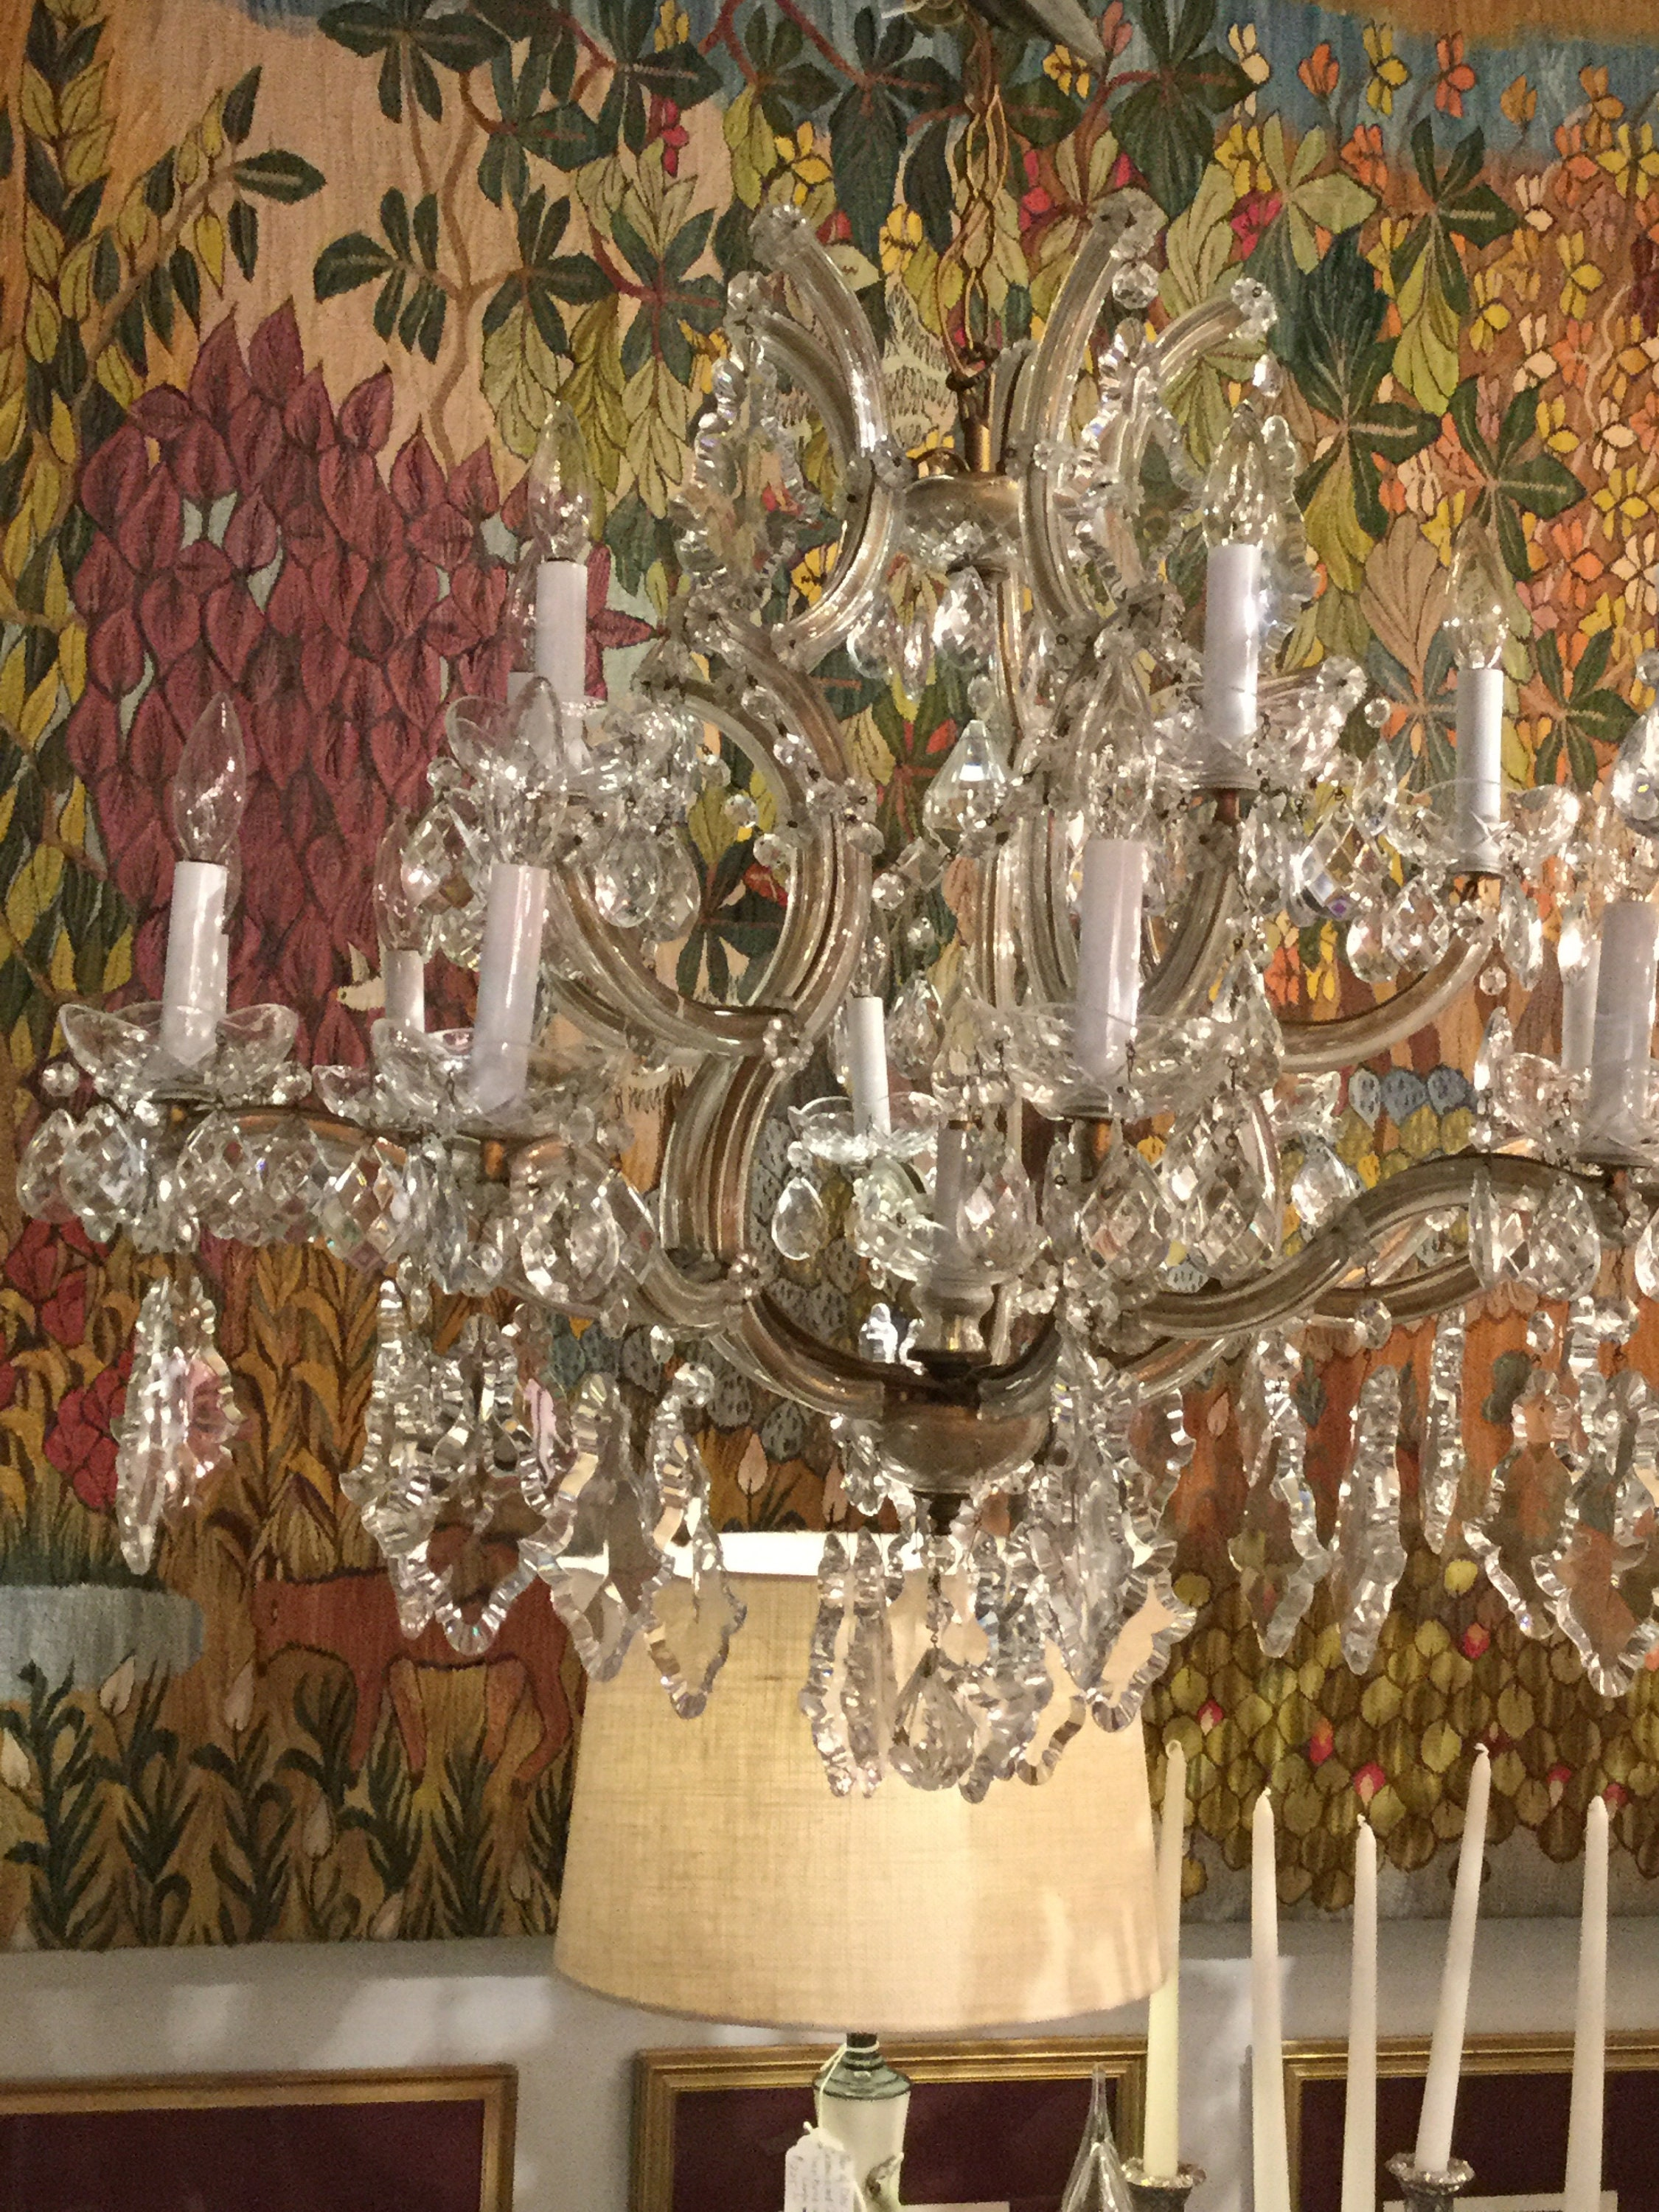 Ca 1900s monumental maria therese italian chandelier 16 light 1900s monumental maria therese italian chandelier 16 light bobeche with crystals aloadofball Images